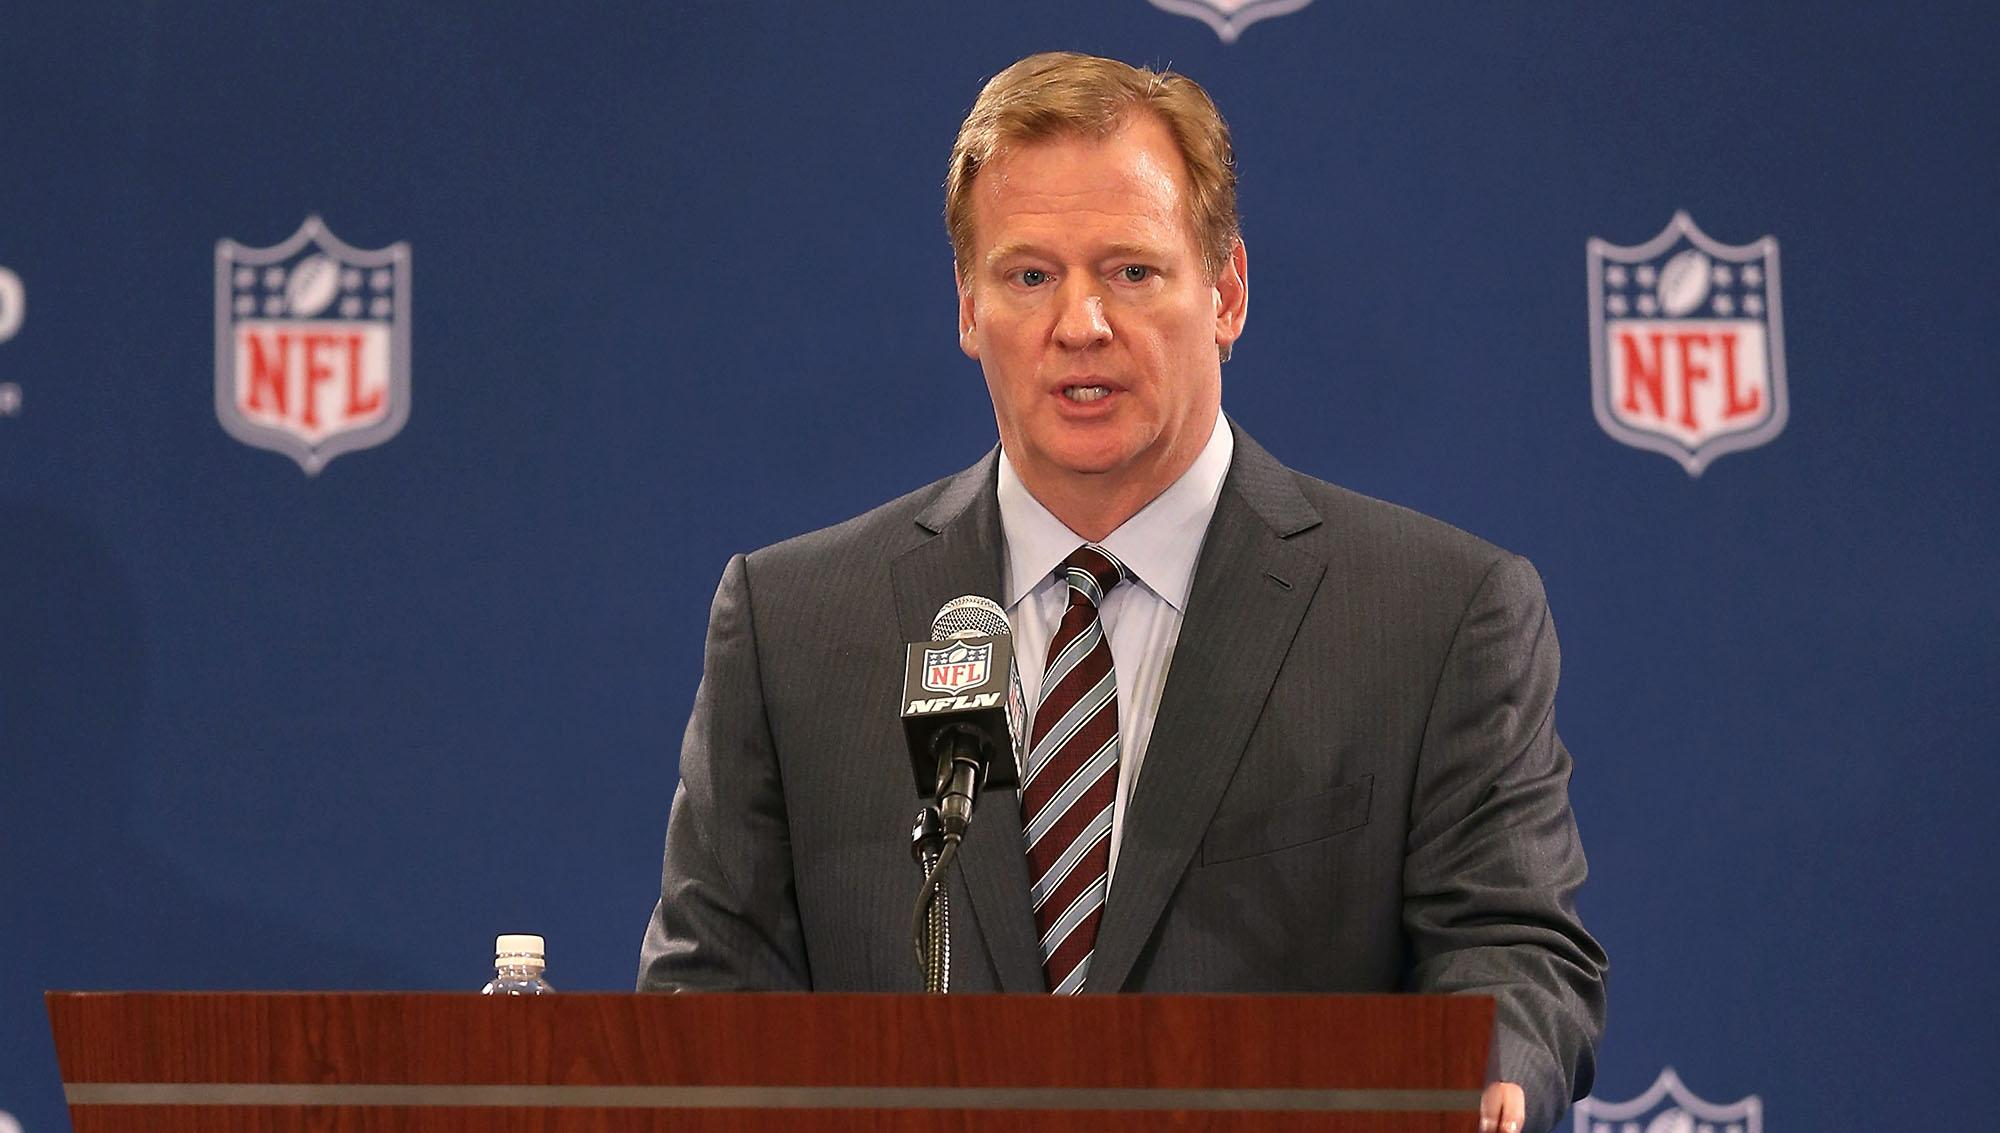 RT @TheOnion: Goodell Assures Fans He Was Too Busy Dismissing Other Players? Assaults To Watch Ray Rice Tape http://t.co/mVdPWgFqxd http://?